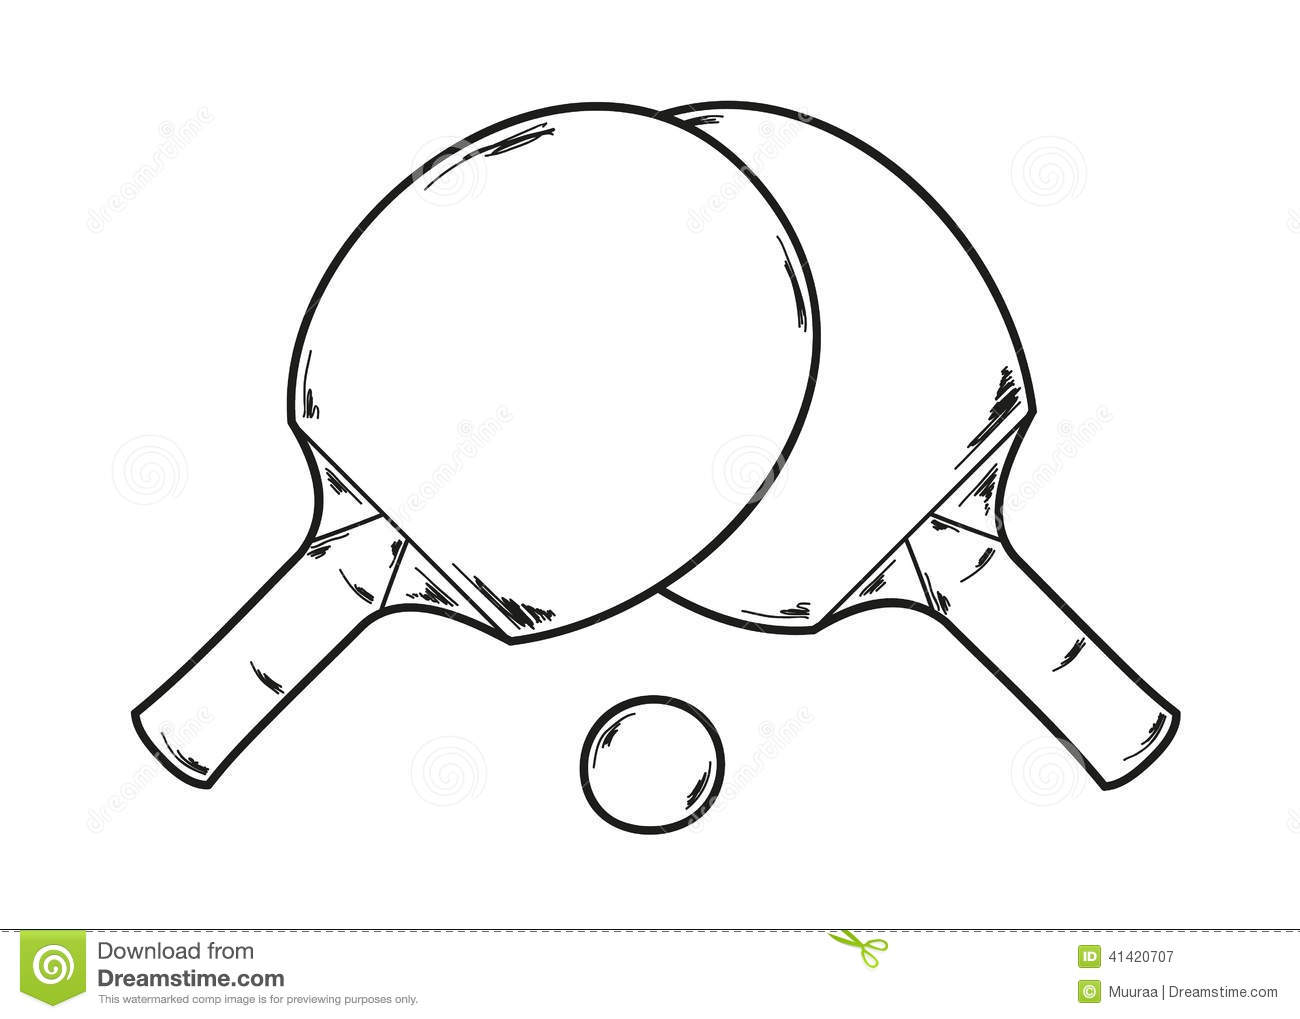 151257289 also Pirate Ship Hand Drawn Vector Illustration 503641948 additionally Stock Illustration Two Ping Pong Rackets Vector Ball Sketch Image41420707 additionally Interior Designer Drawing additionally Pak Urdu Installer Free Download. on hand tools